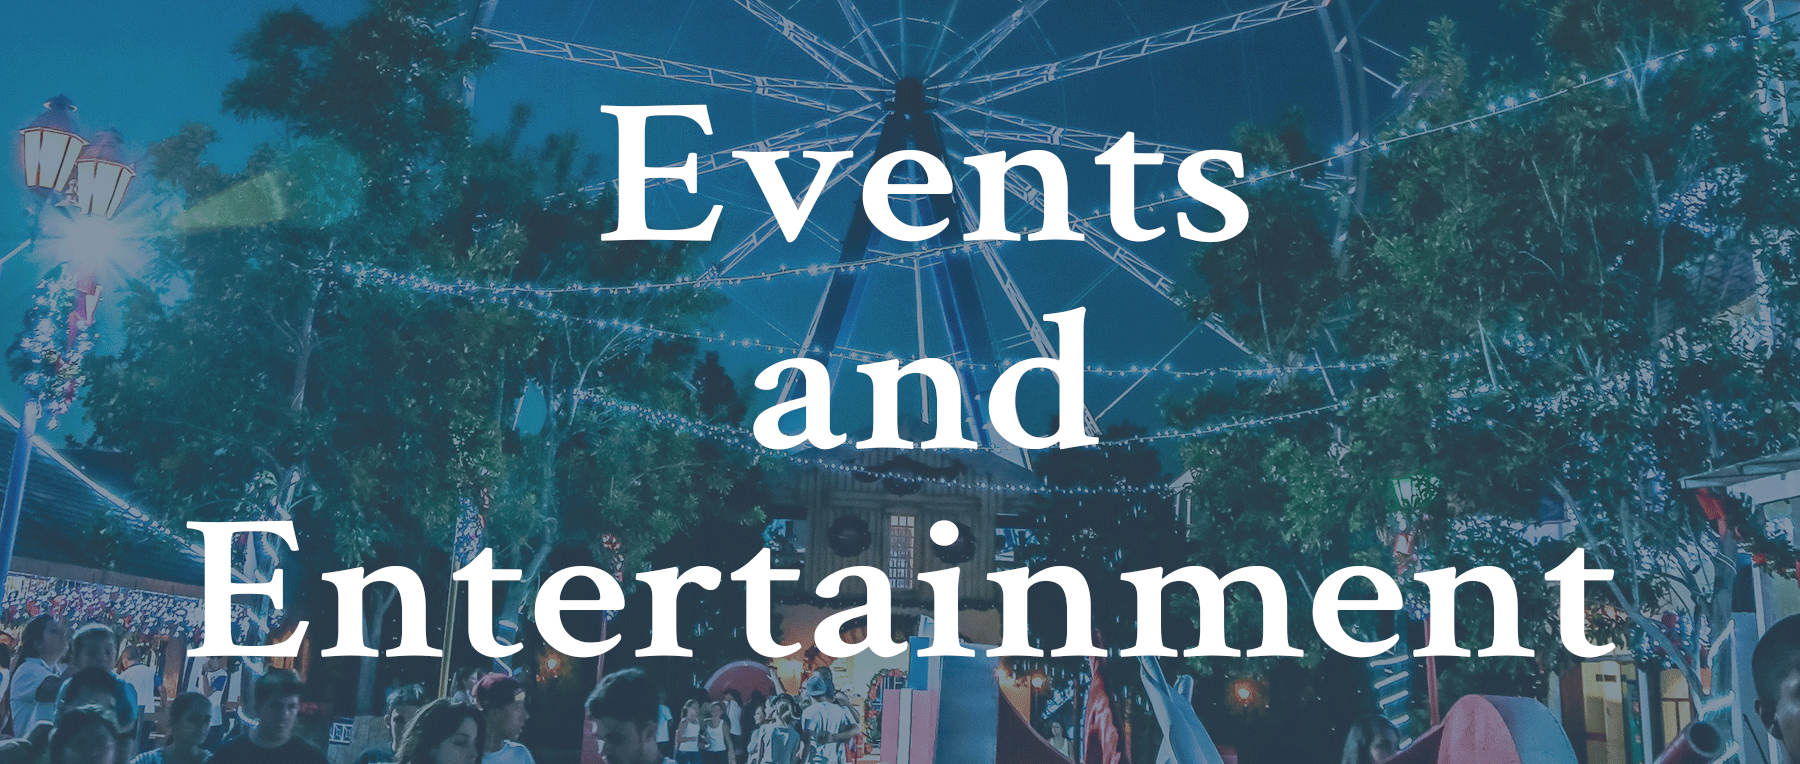 Click for event and entertainment